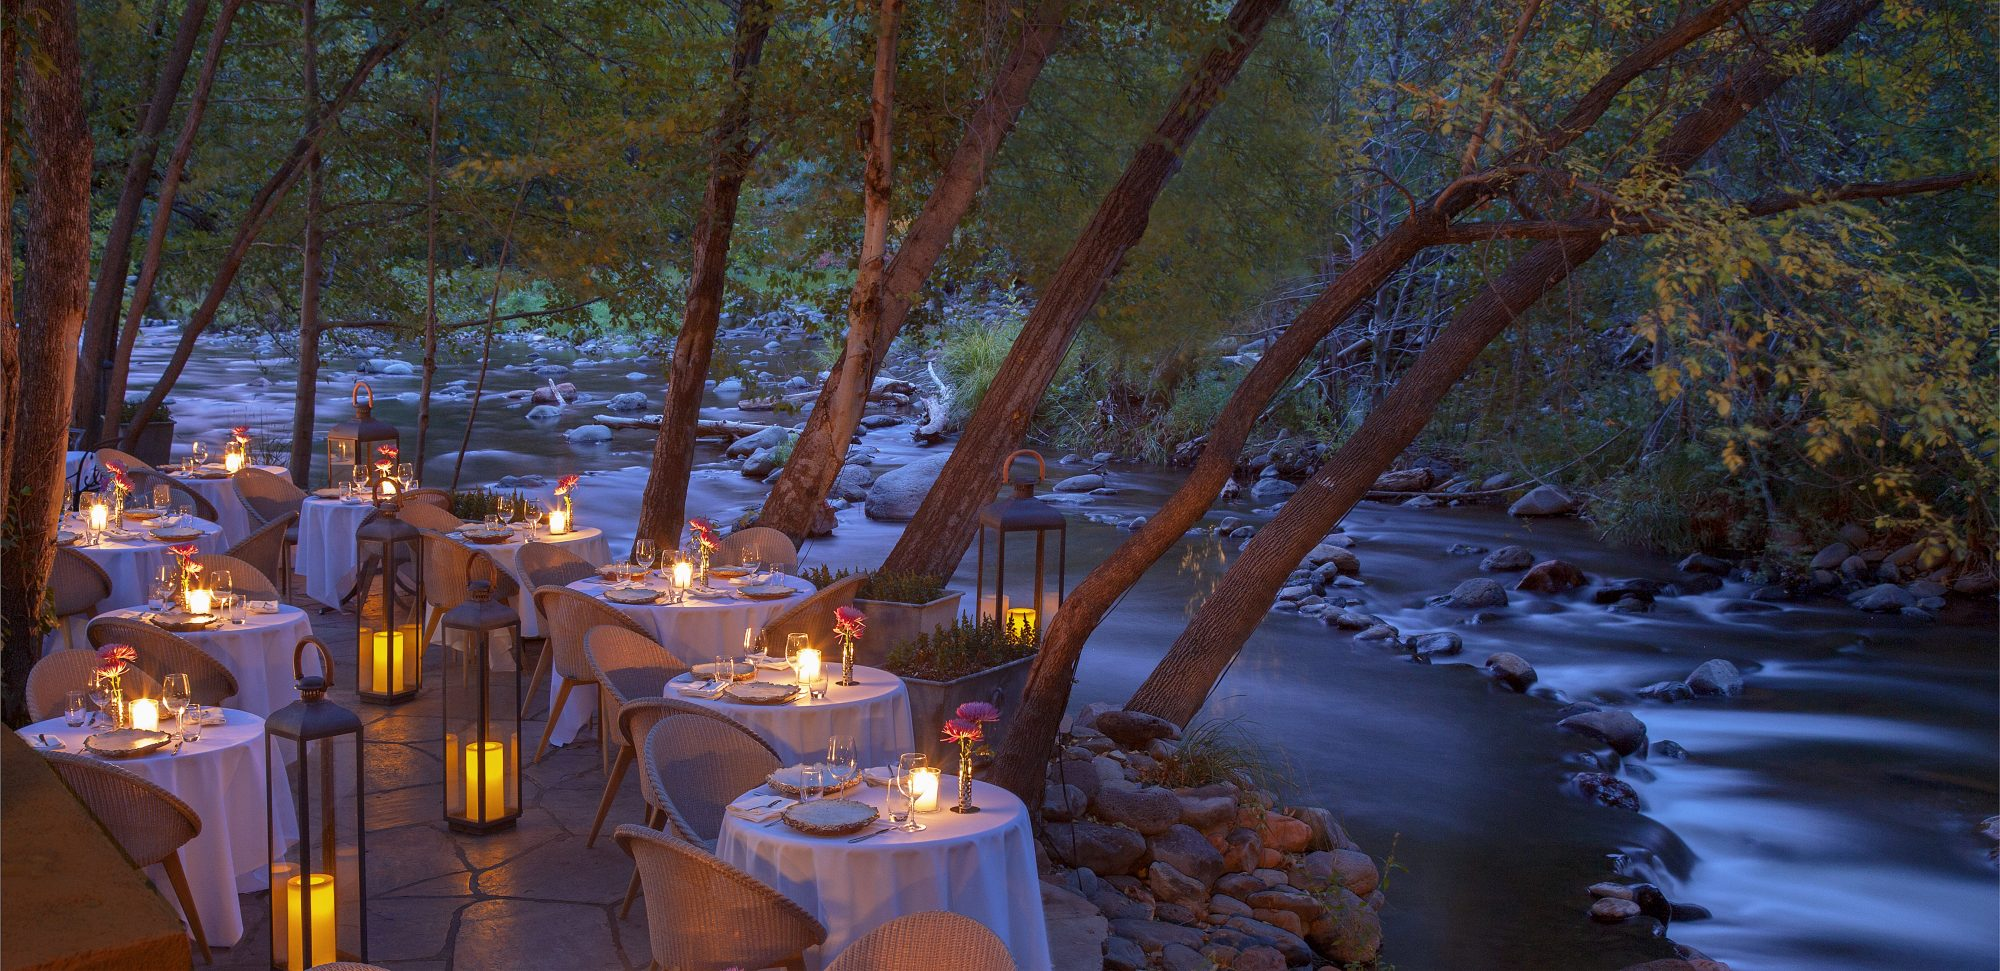 The 100 Most Scenic Restaurants In America According To